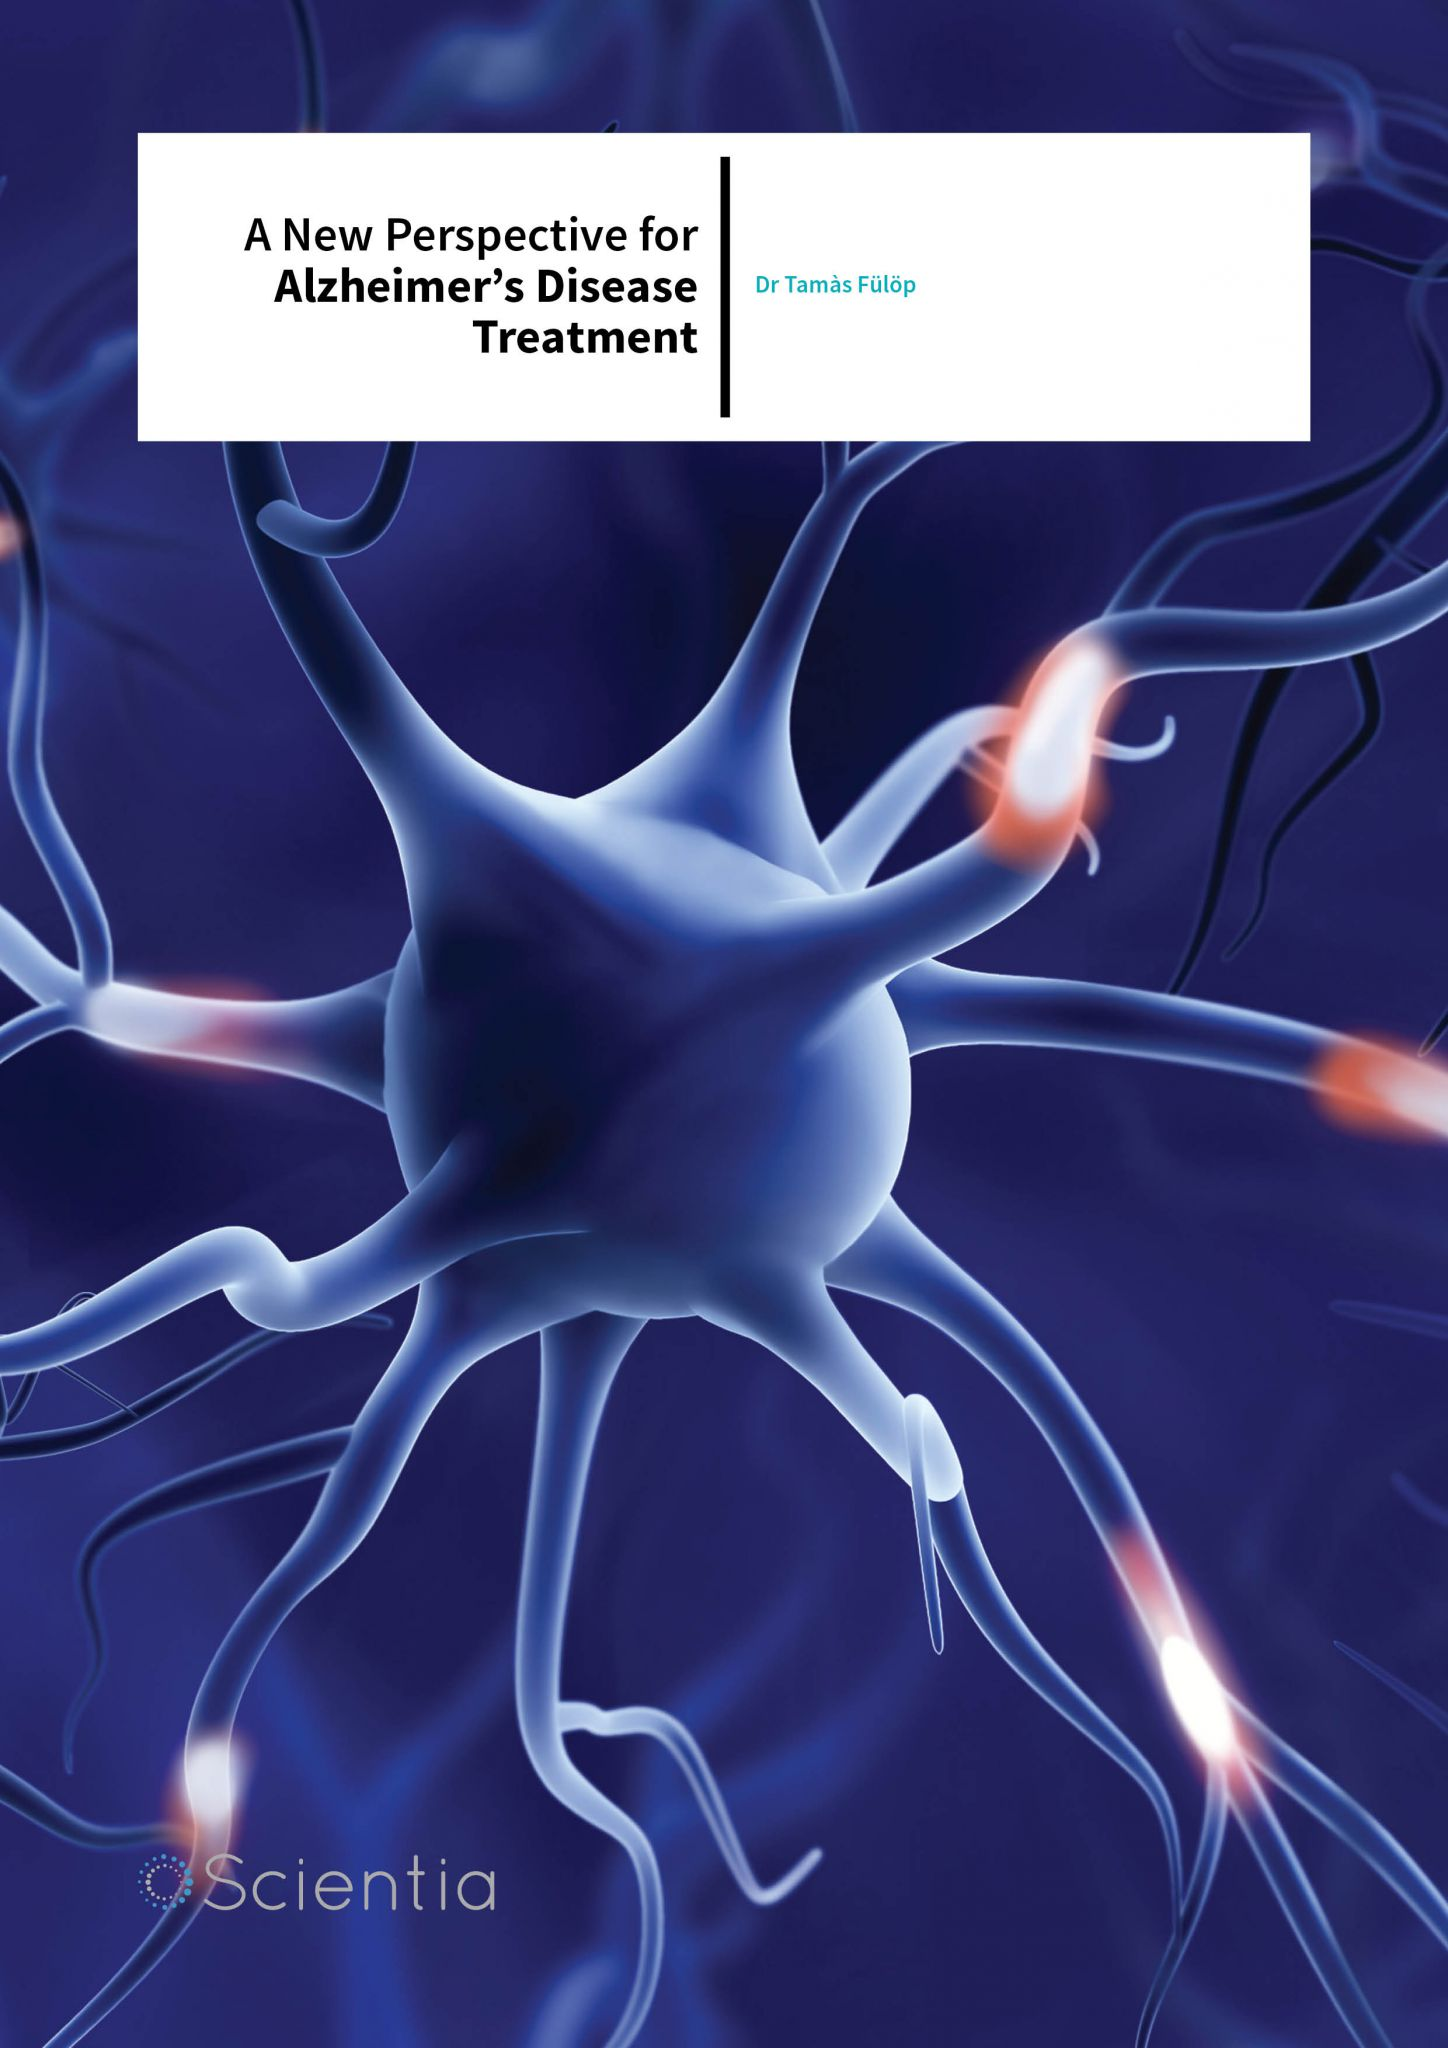 Dr Tamàs Fülöp – A New Perspective For Alzheimer's Disease Treatment